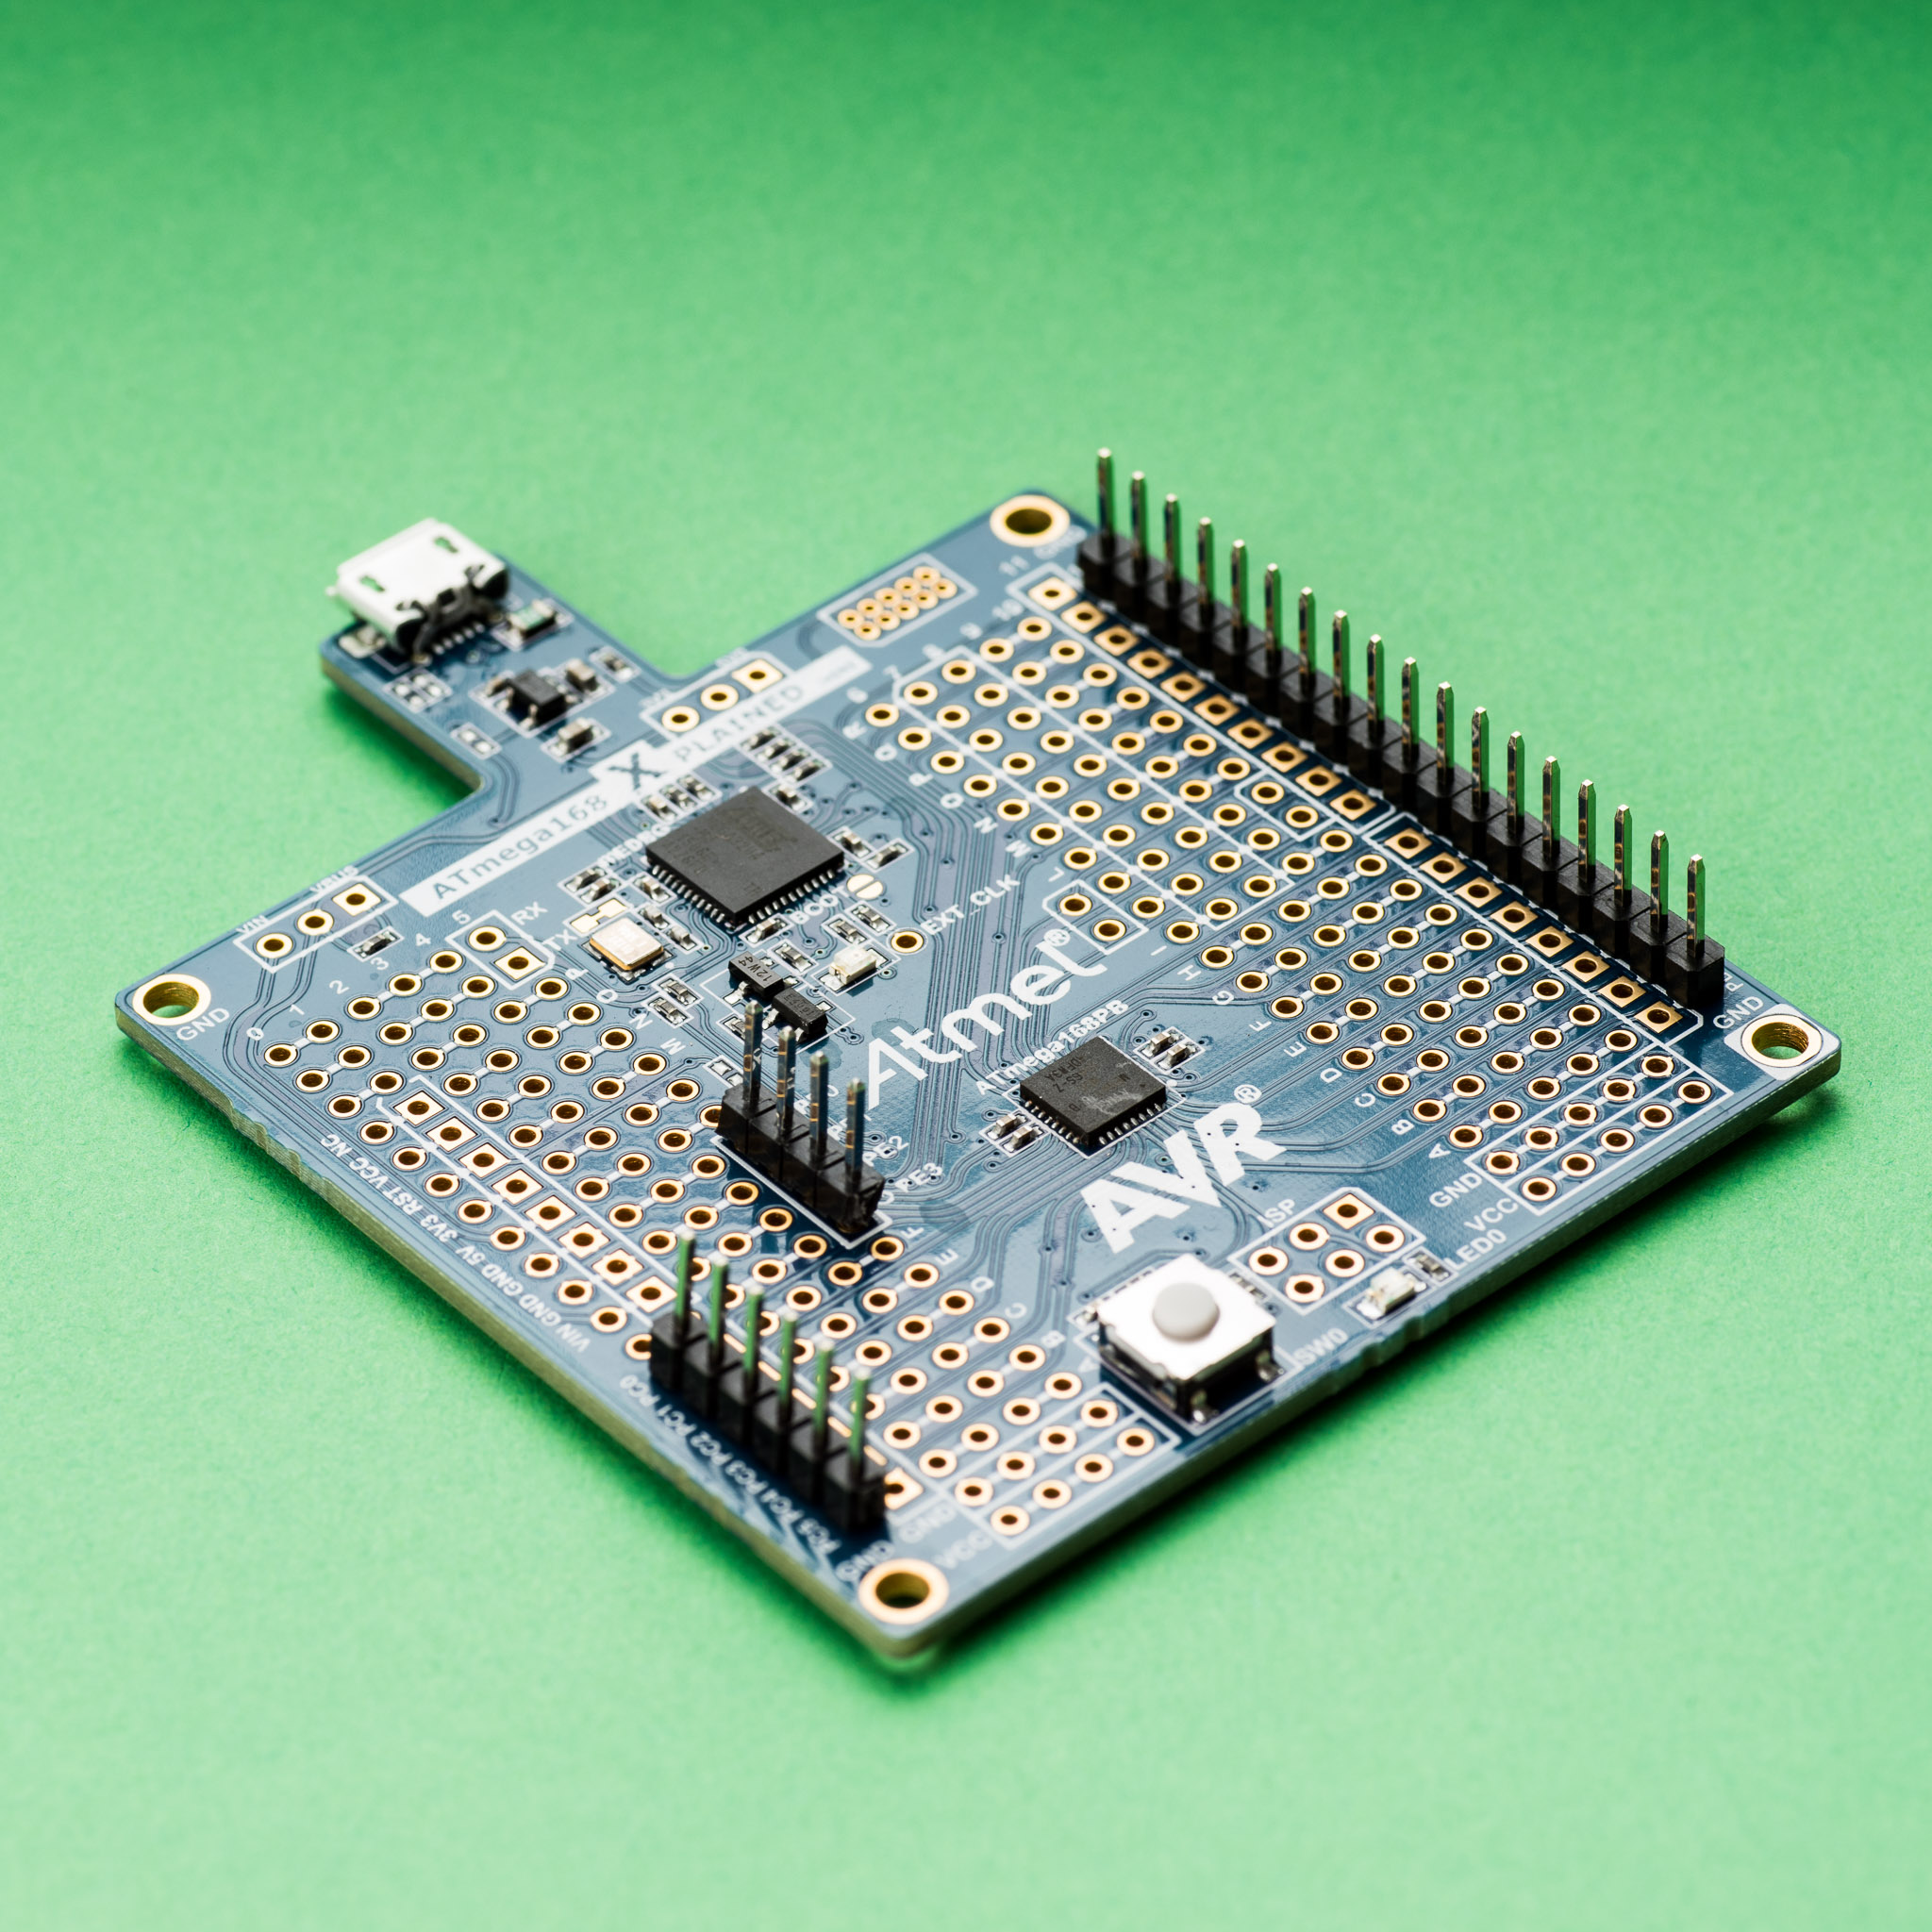 Atmel Microchip Tinyavr 1 Series Jay Carlson Six Pin Microcontrollers From Avr Attiny10